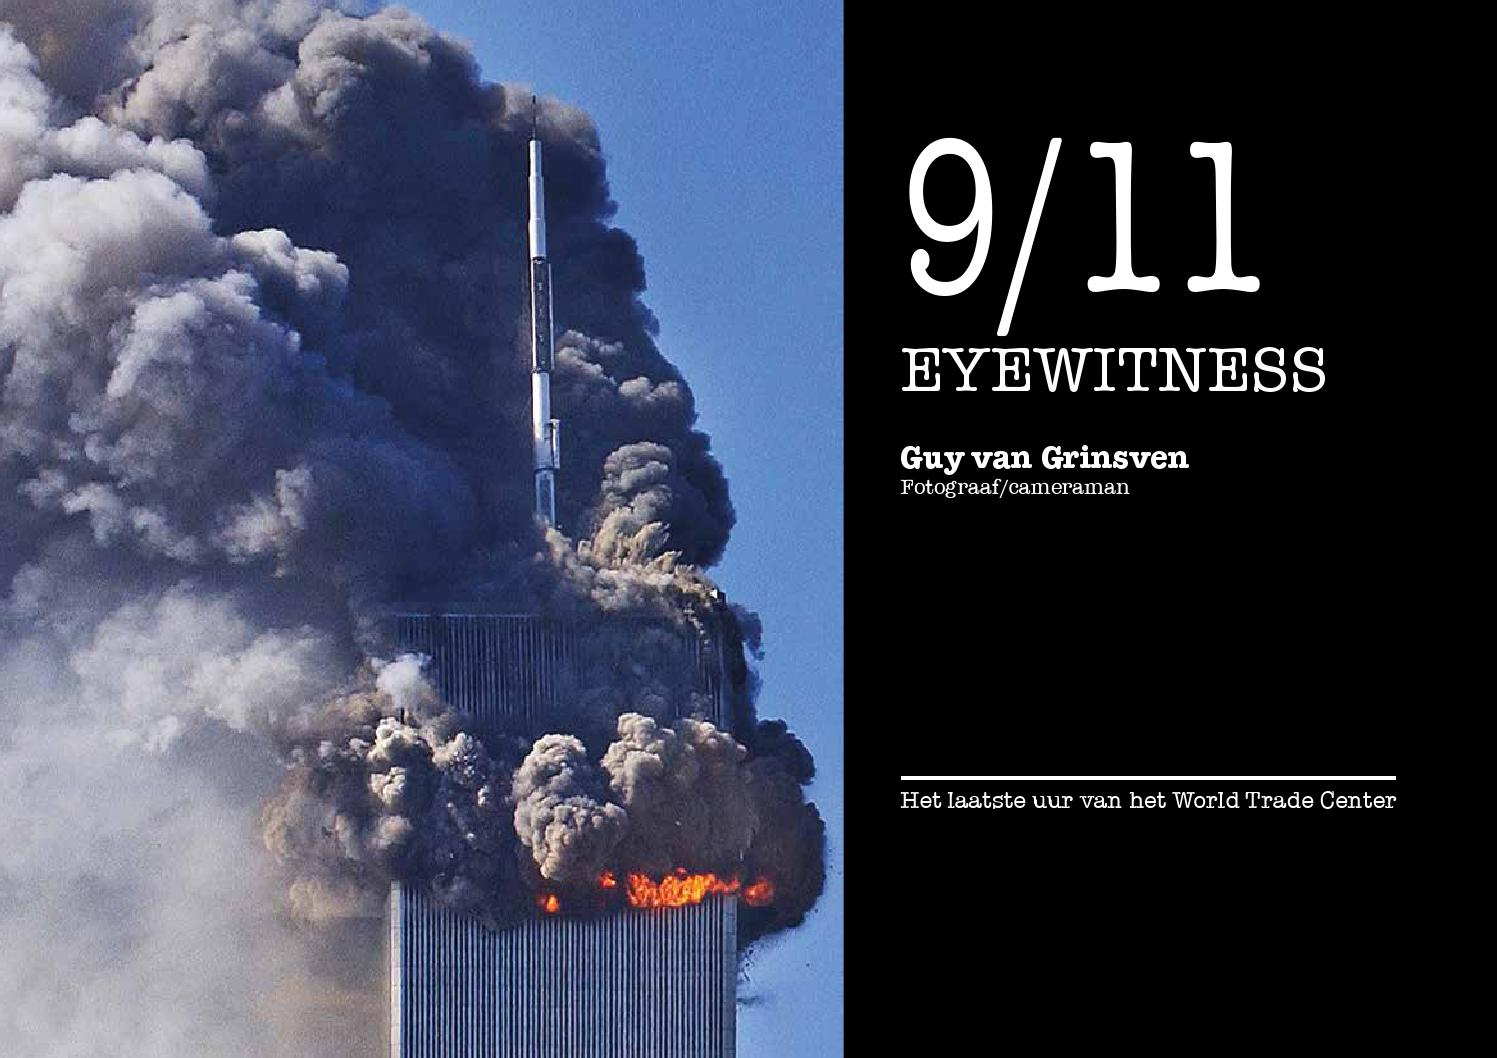 Guy van Grinsven over 9/11